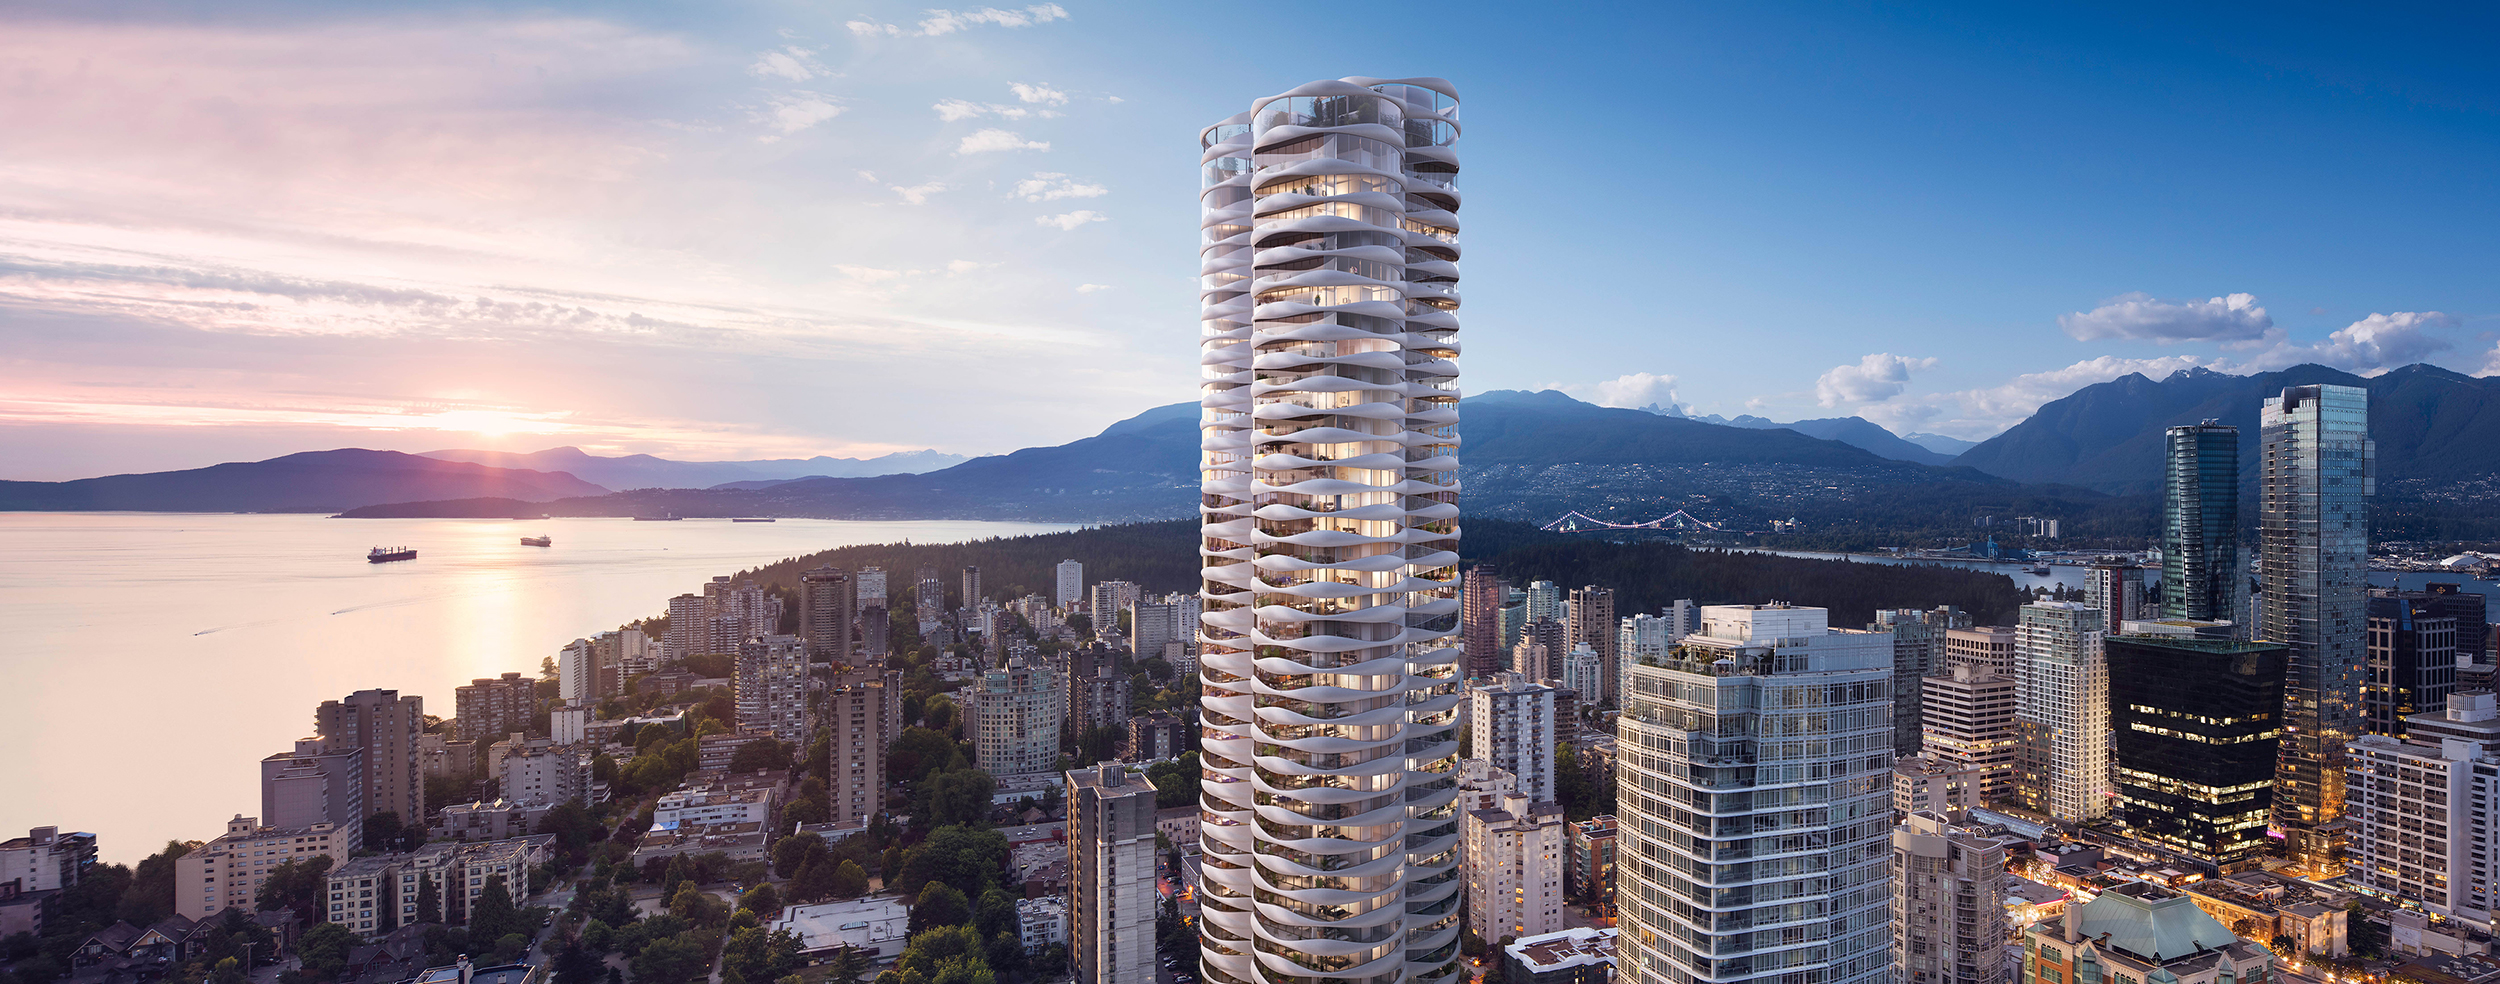 The Butterfly by Westbank, New Condo Development in Vancouver